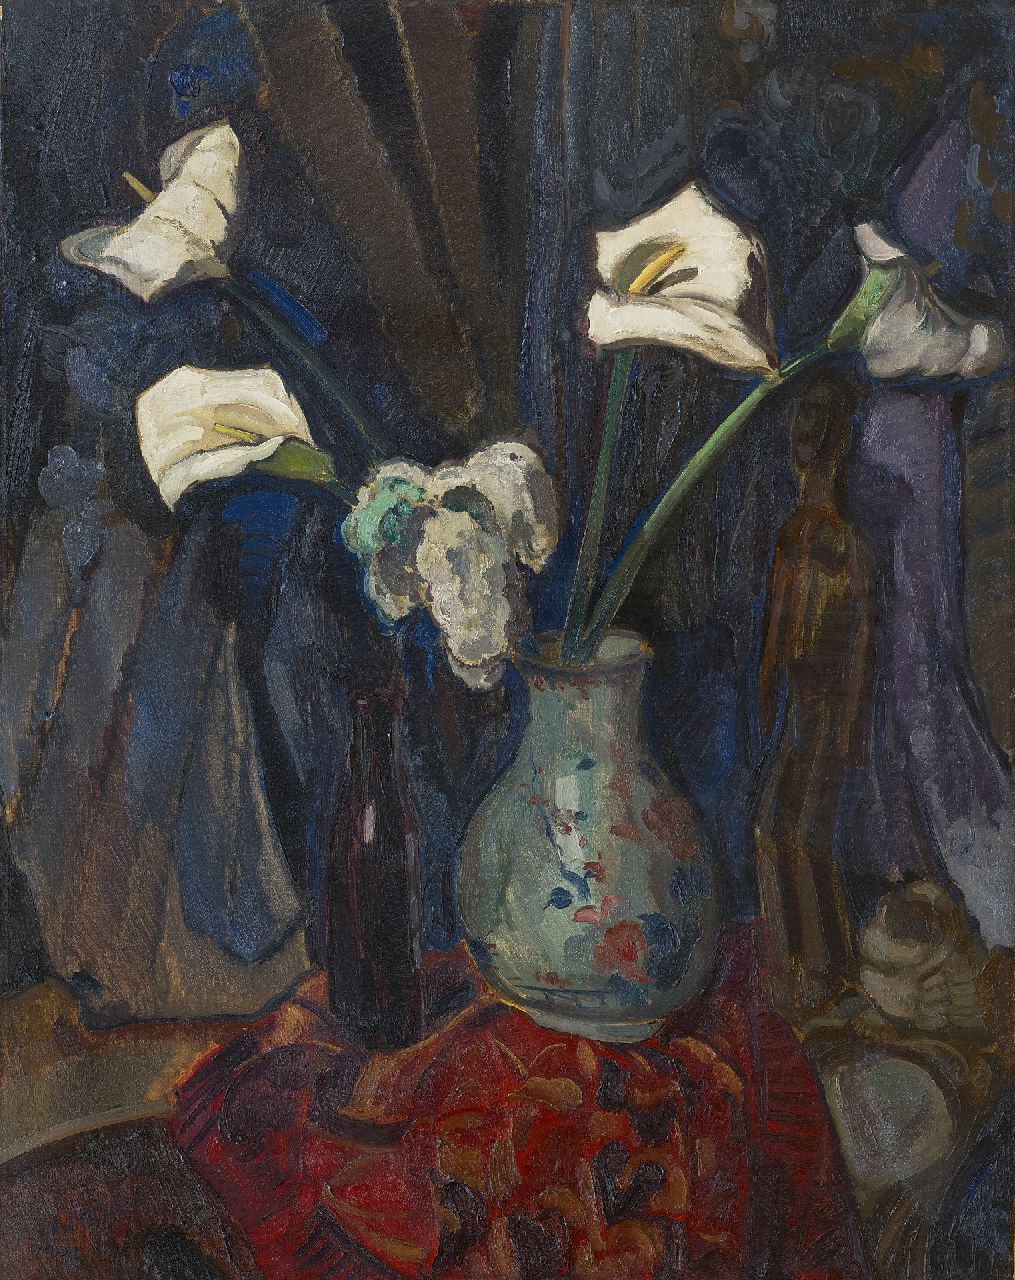 Filarski D.H.W.  | 'Dirk' Herman Willem Filarski | Paintings offered for sale | Arums in a vase, oil on canvas 100.5 x 80.2 cm, signed l.l. and painted ca. 1918-1922